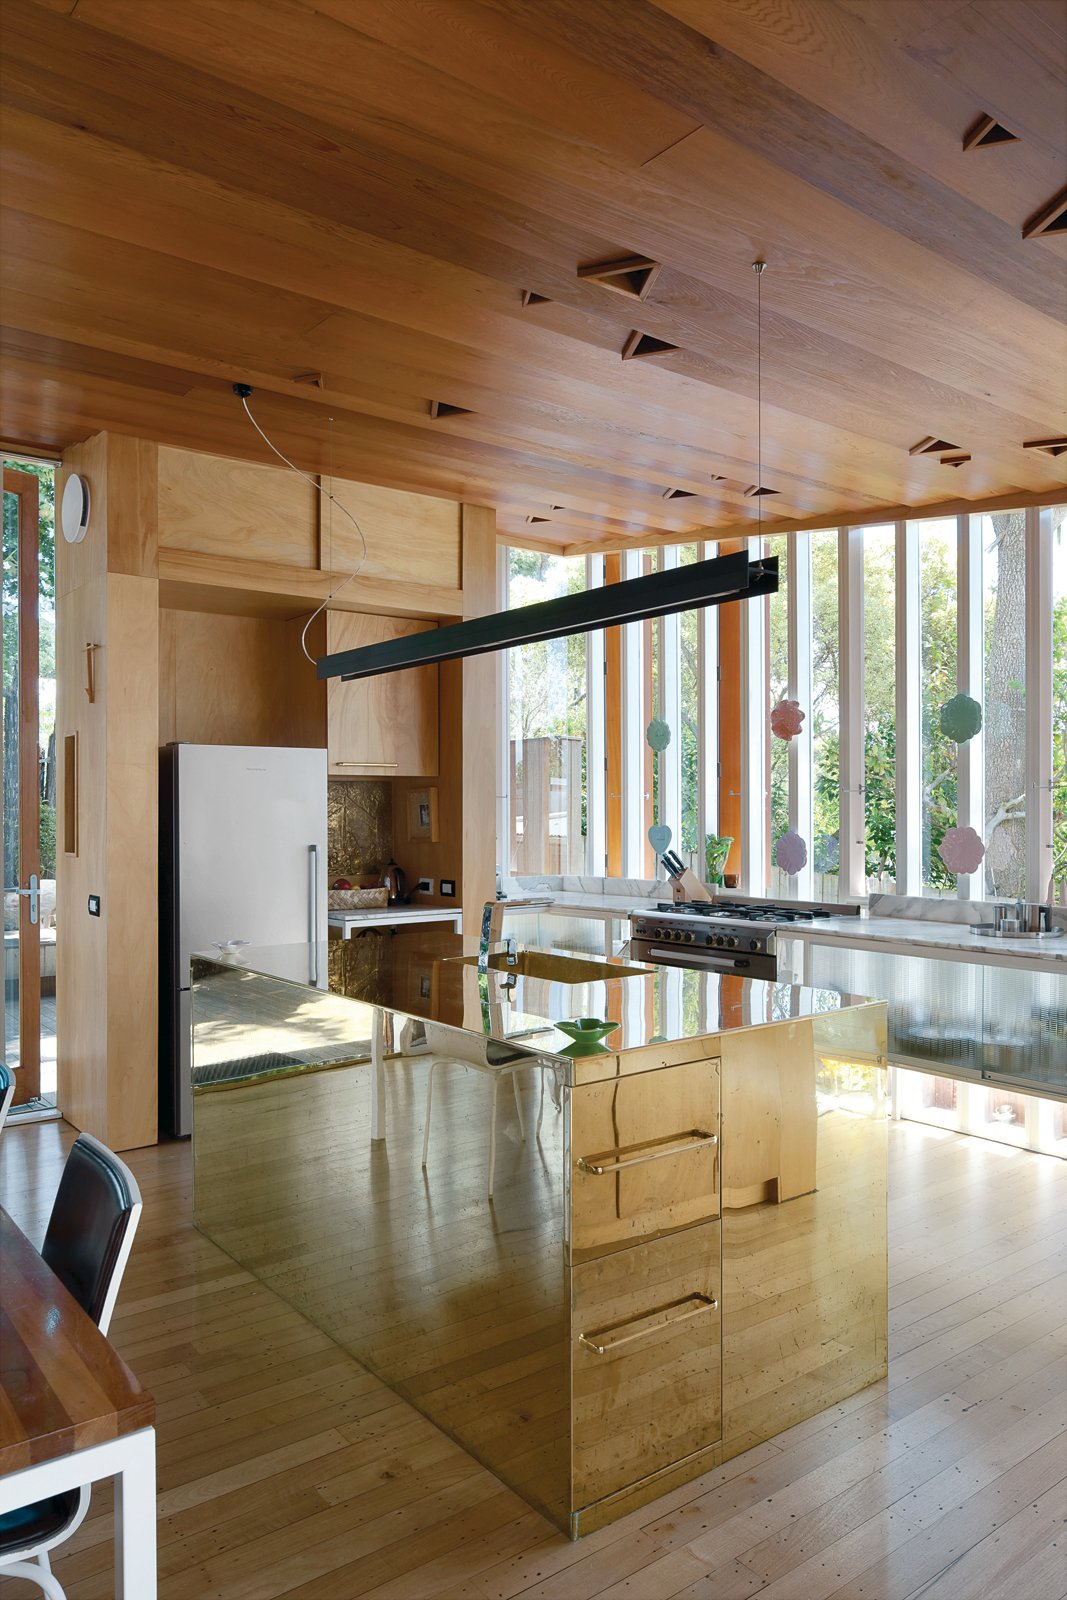 Kitchen, Metal Counter, Pendant Lighting, Refrigerator, and Metal Cabinet the reflectivity of the brass kitchen island makes it seem to dematerialize.  Solutions For Tiny Kitchens by Aileen Kwun from The Great Compression